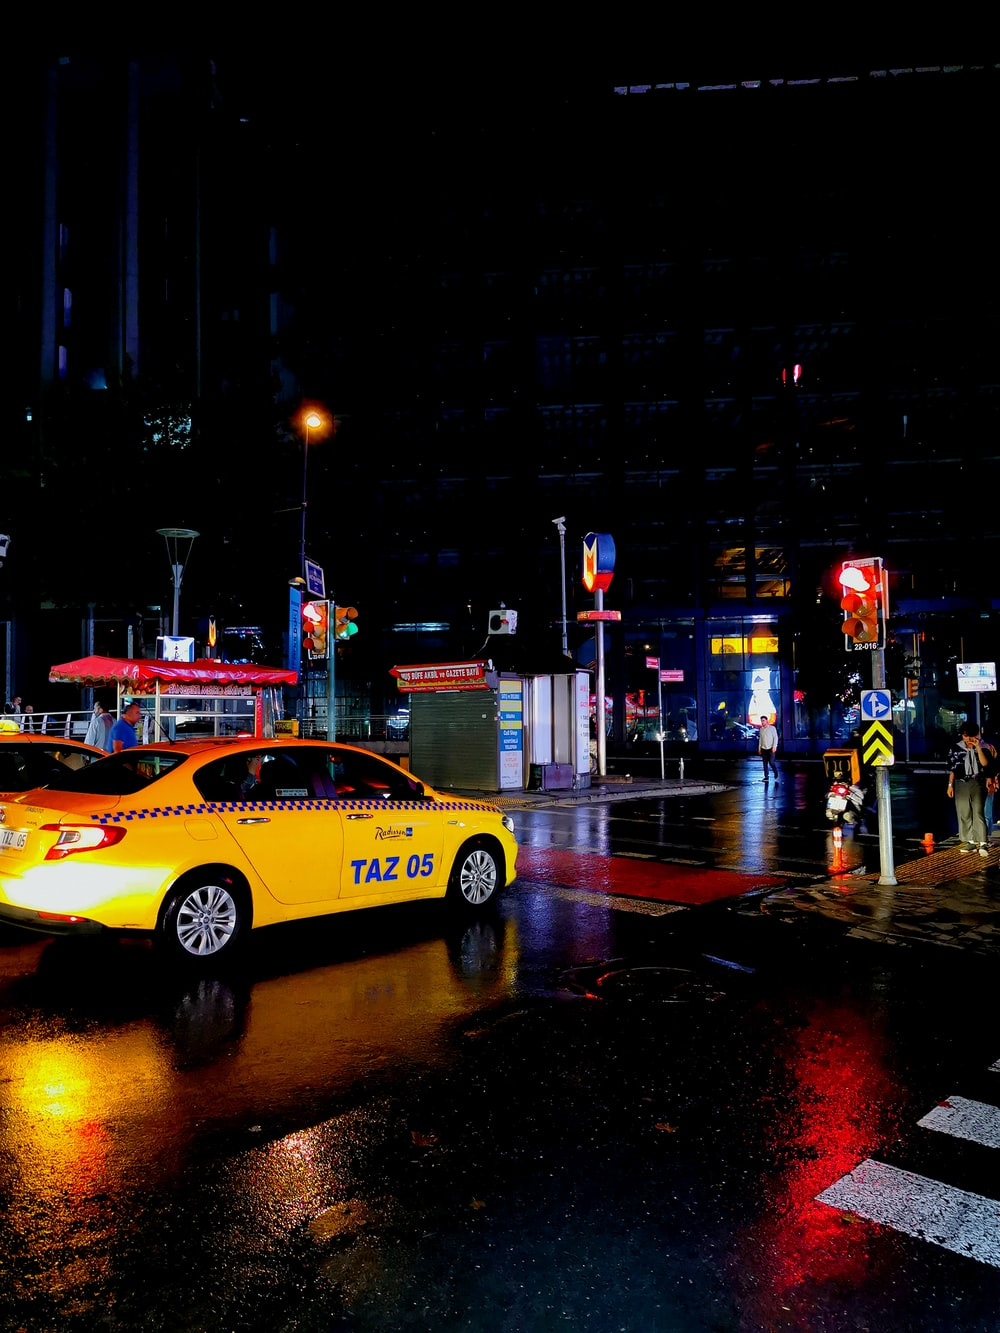 yellow taxi passing by wet road during nighttime